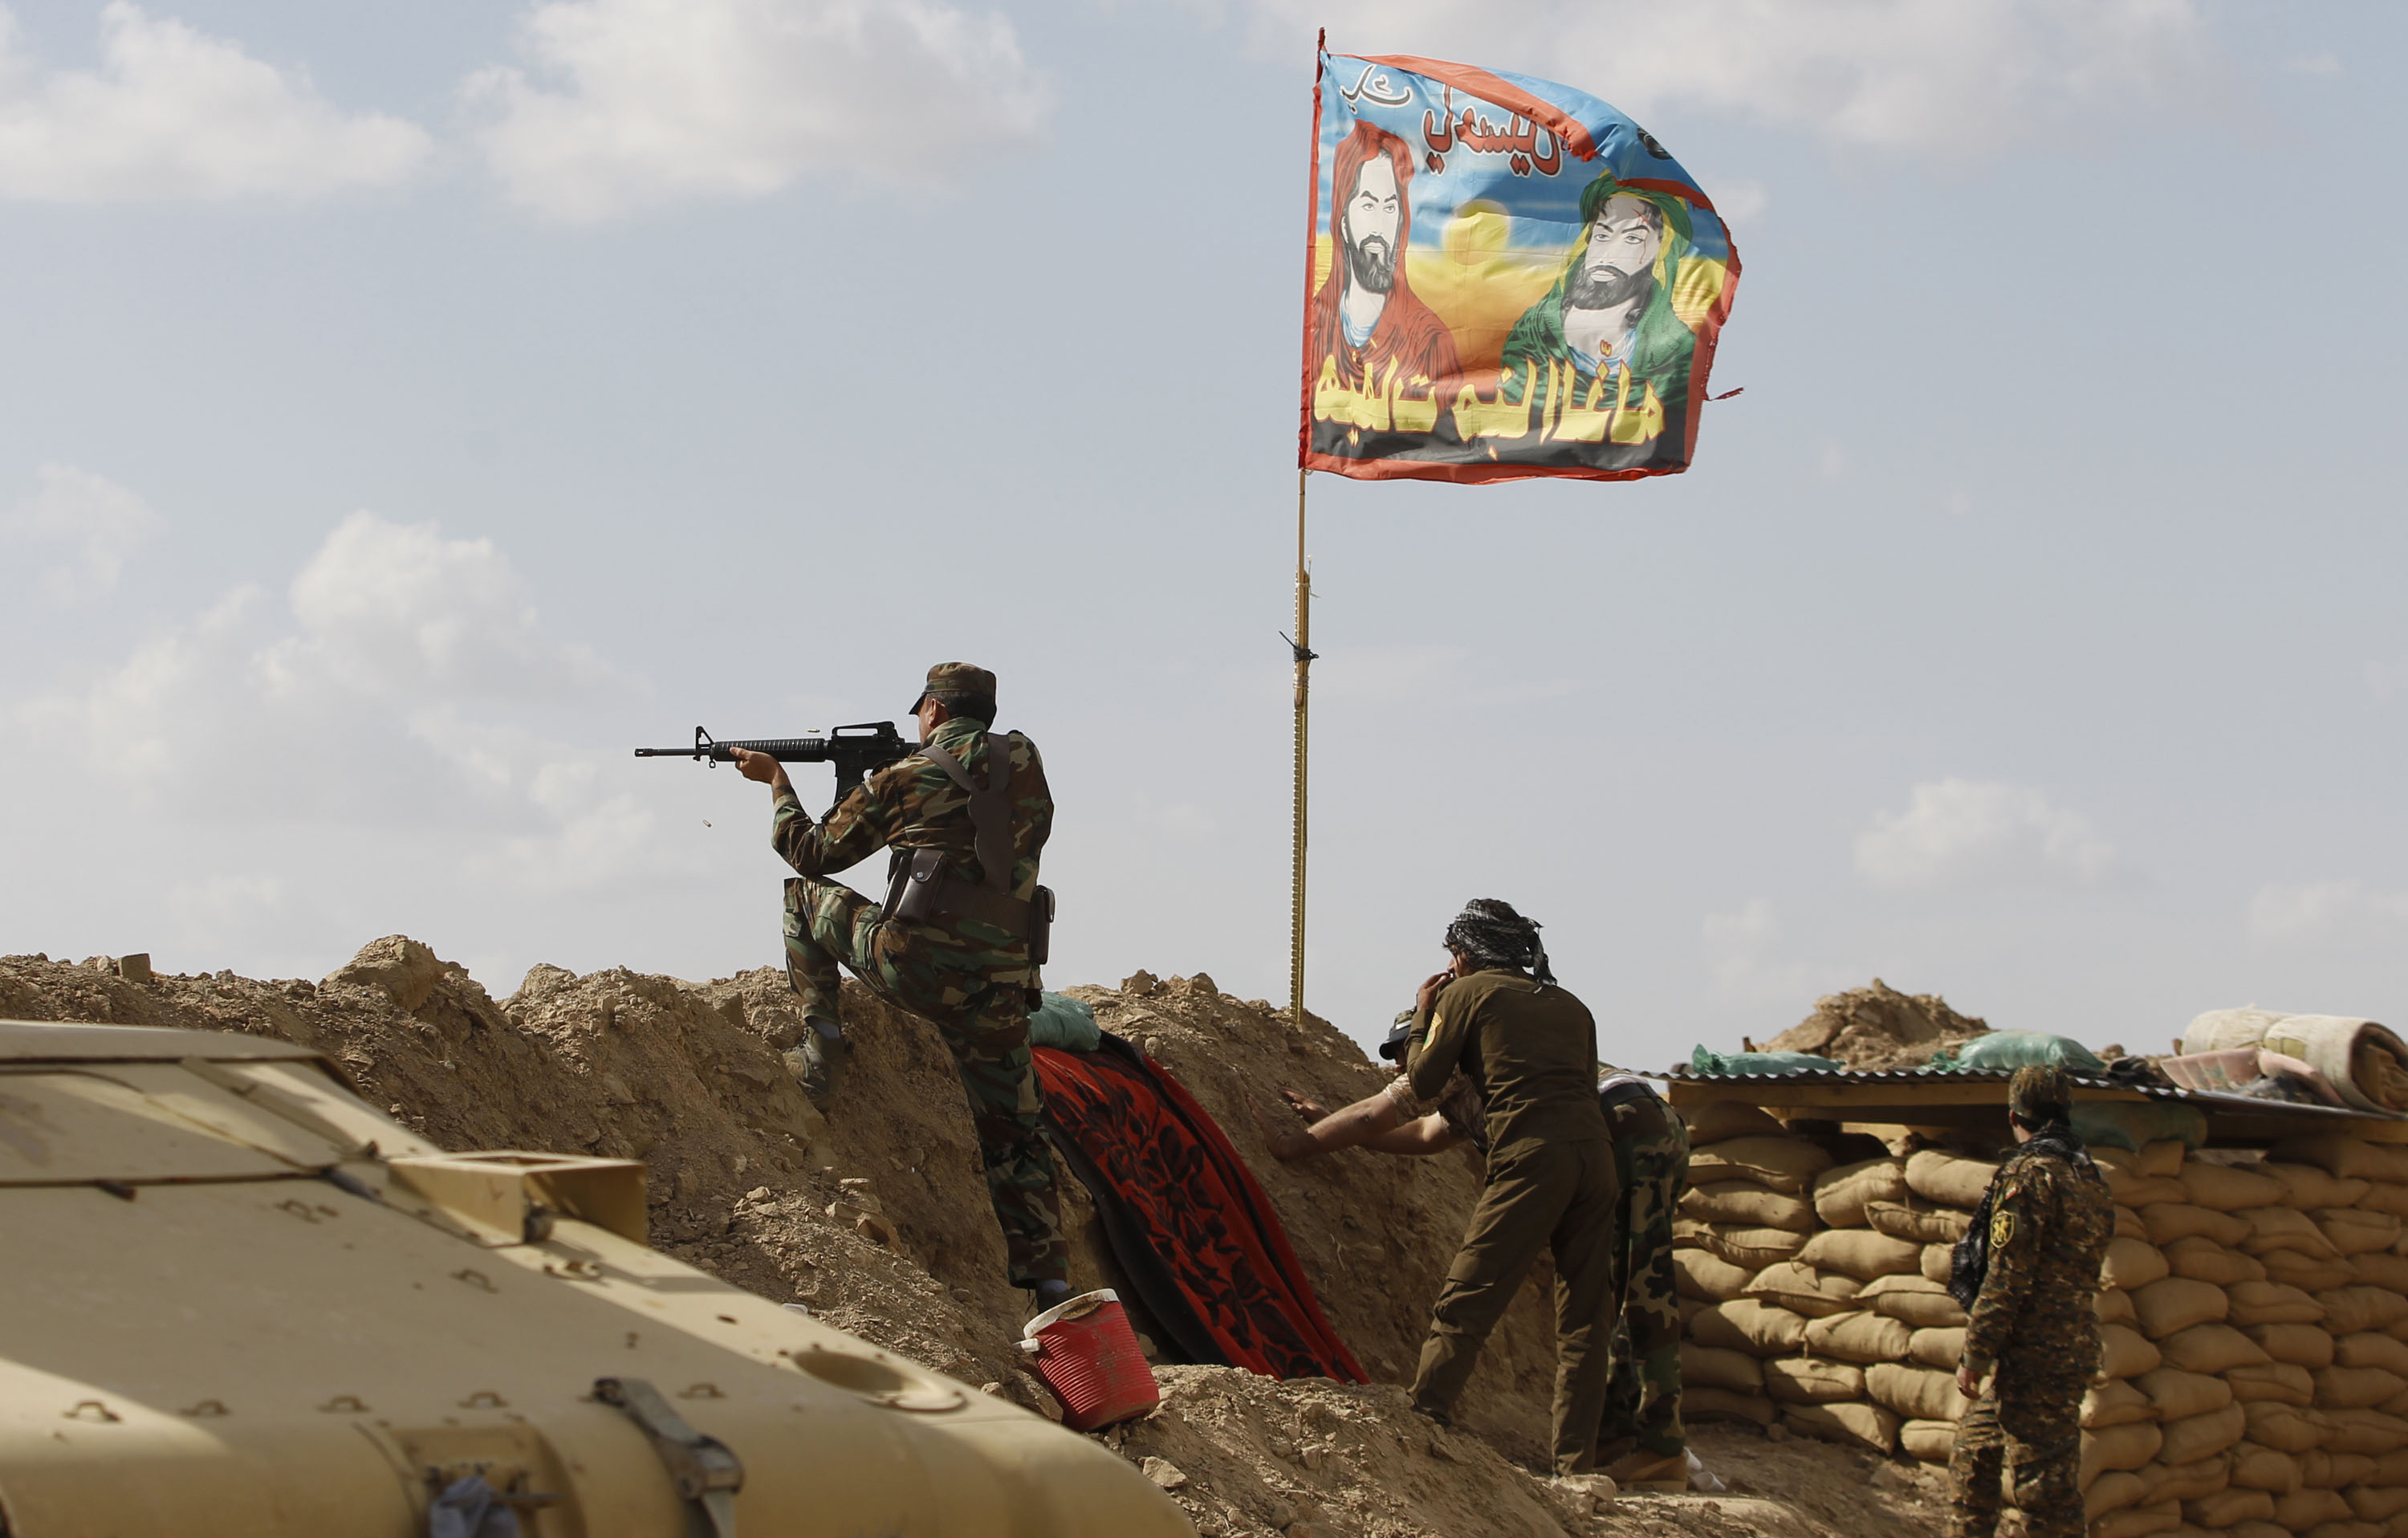 DATE IMPORTED: March 02, 2015 Shi'ite fighters clash with Islamic State militants at Udhaim dam, north of Baghdad, March 2, 2015. Iraq's armed forces, backed by Shi'ite militia, attacked Islamic State strongholds north of Baghdad on Monday as they launched an offensive to retake the city of Tikrit and the surrounding Sunni Muslim province of Salahuddin. REUTERS/Thaier Al-Sudani